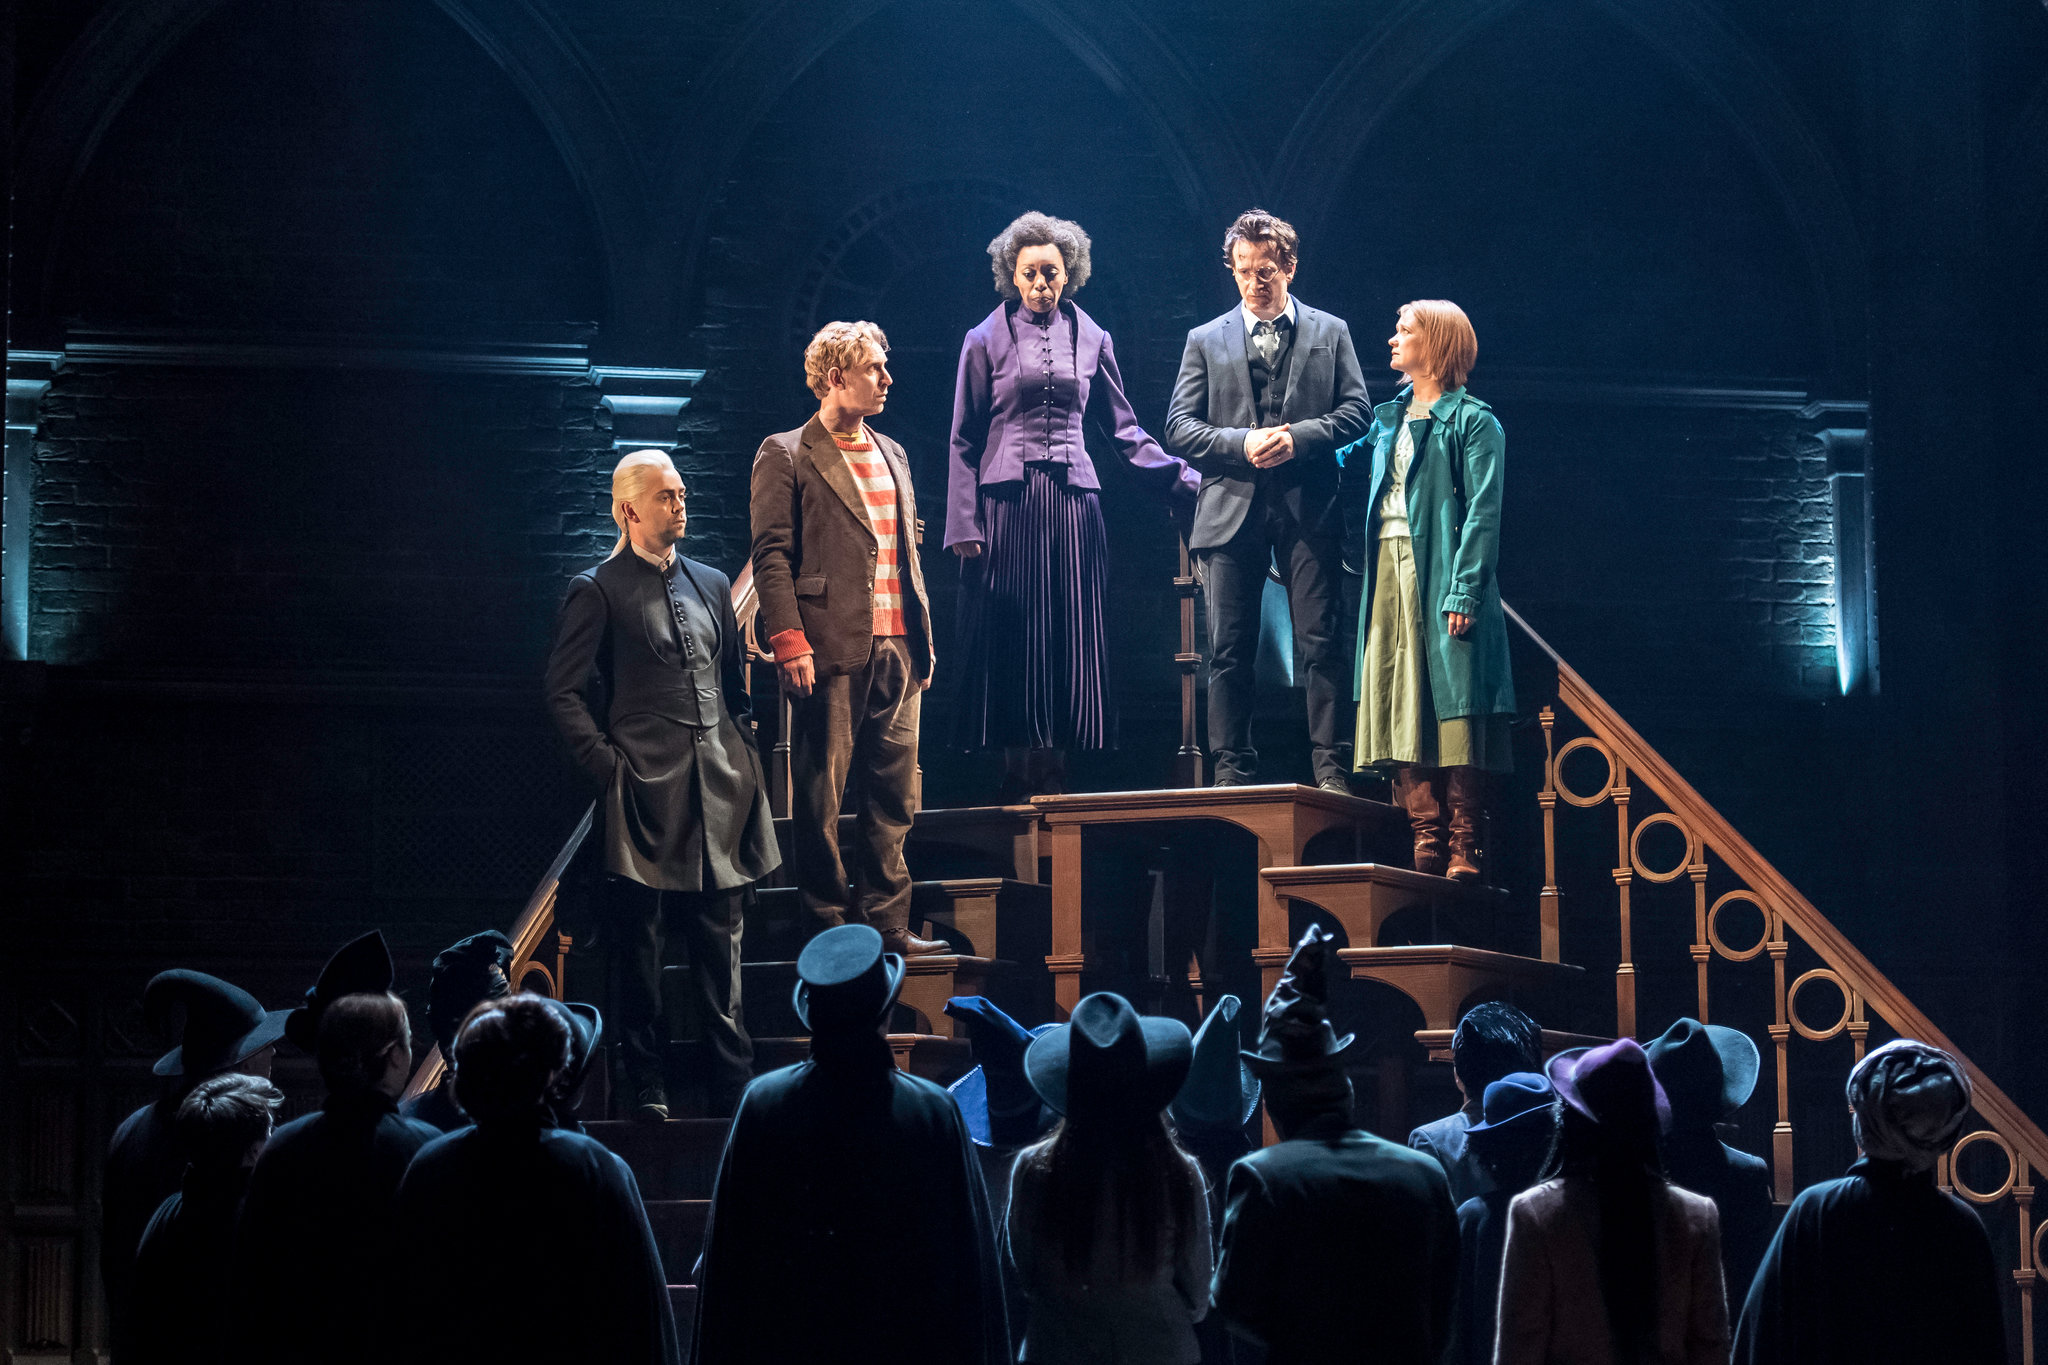 Harry Potter and The Cursed Child - Part 1 & 2 (5/14 7:30PM & 5/15 7:30PM) at Lyric Theatre